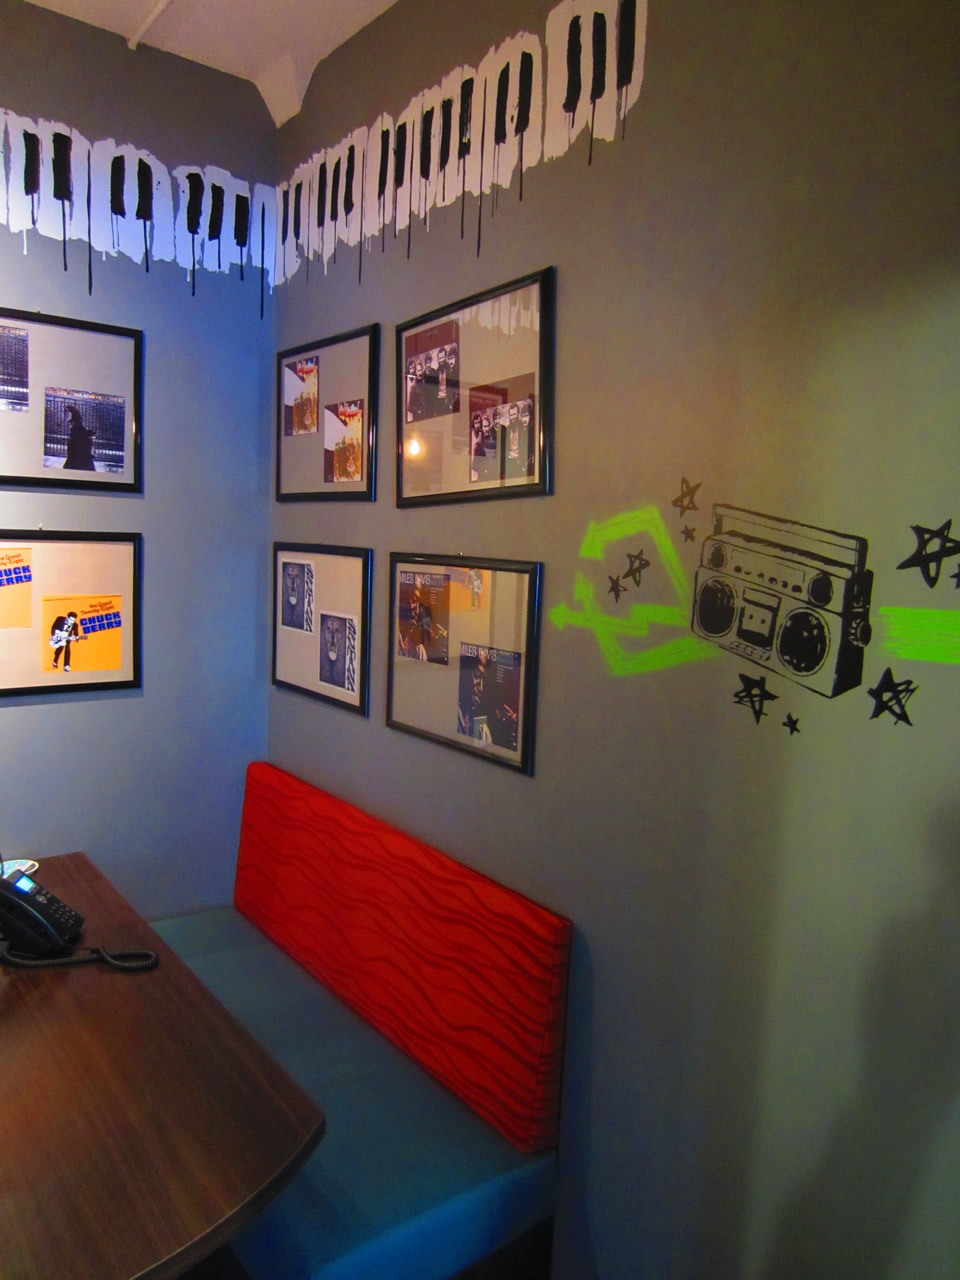 View of posters on the wall of the music room